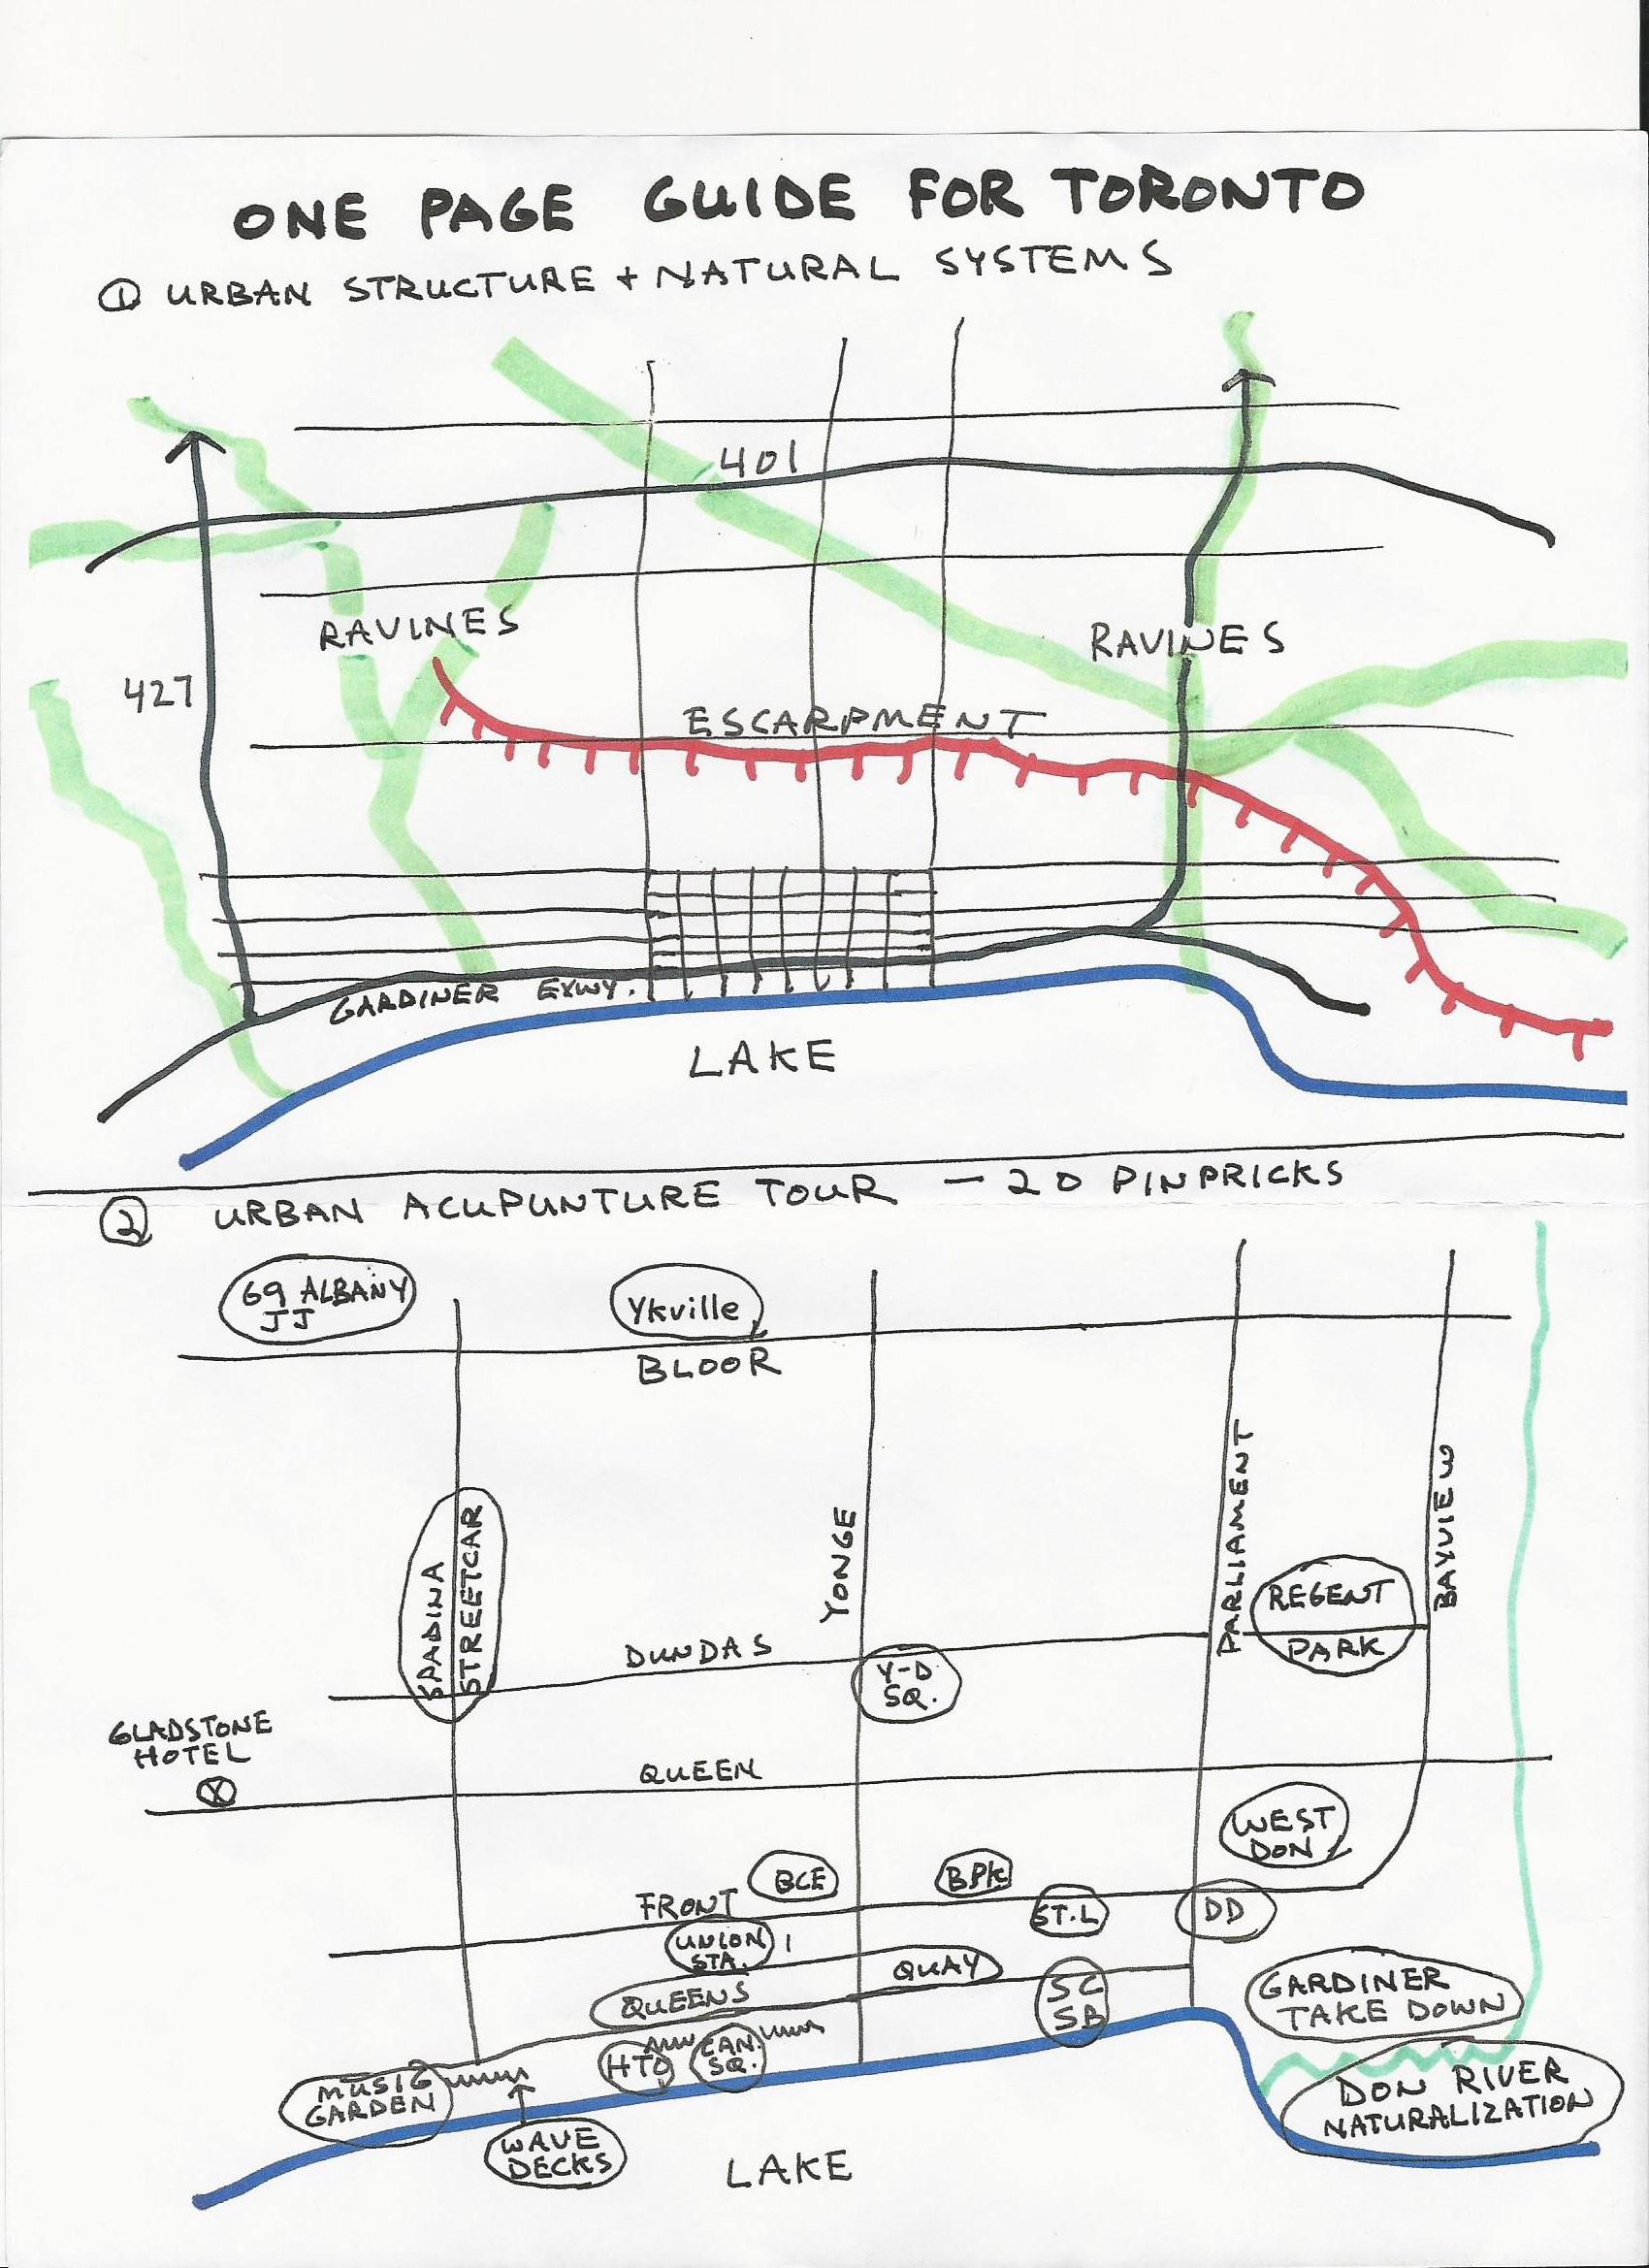 Paul Bedford's Urban Acupuncture Guide for Toronto